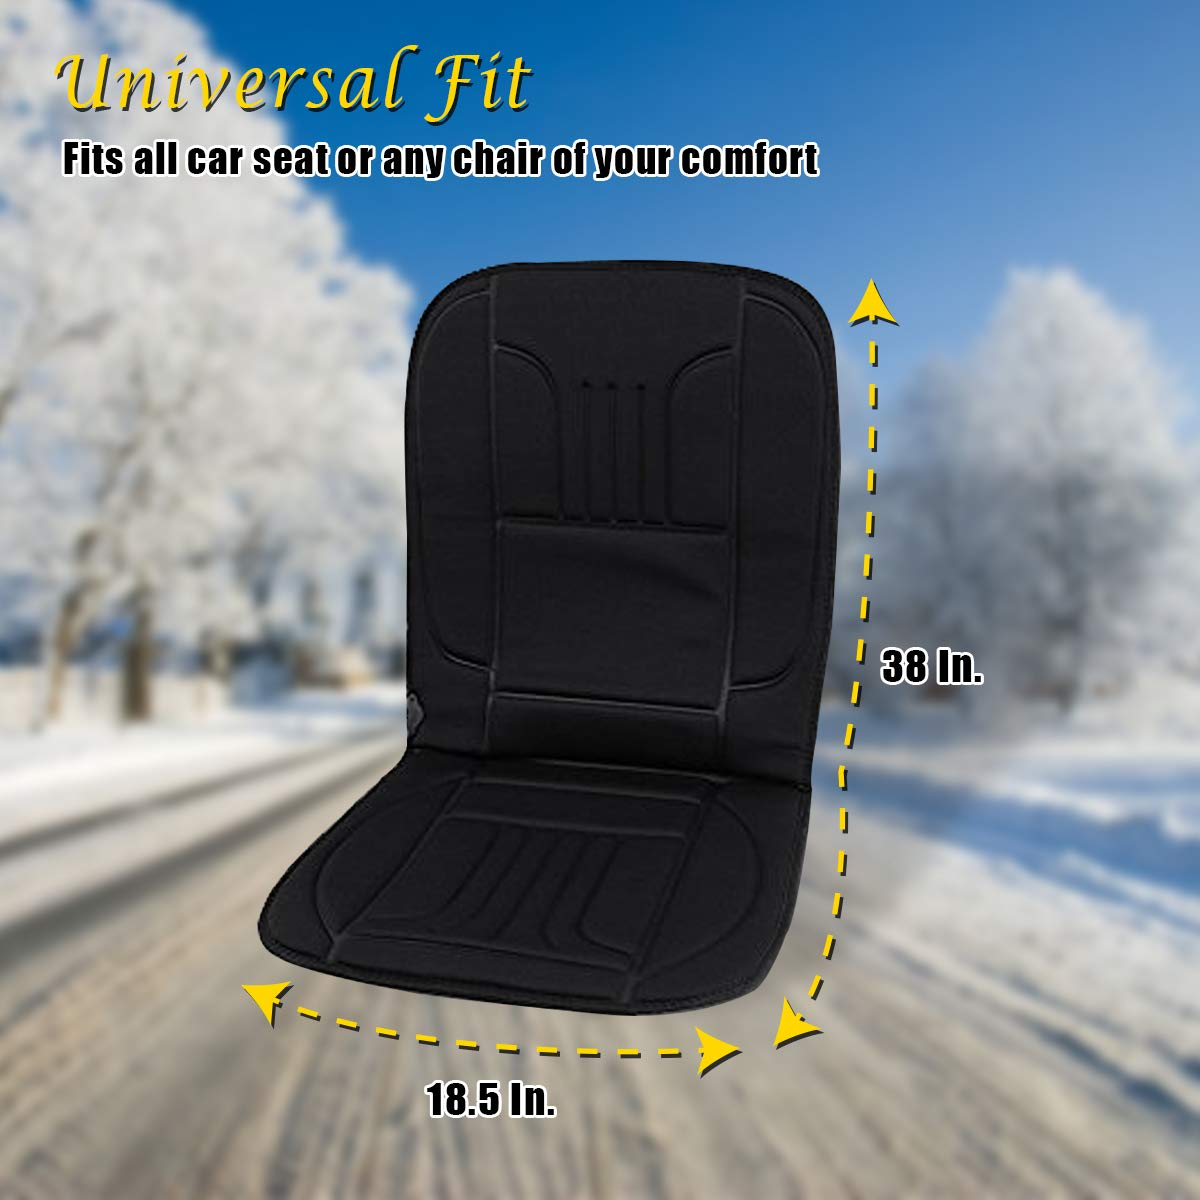 VaygWay 12V Heated Car Seat Cushion-Car Auto Seat Heater Warmer Fireproof Anti-Flammable Extremely Safe 2Pk Vehicle Padded Fabric Cushion-Temperature Control Timer Adjustment